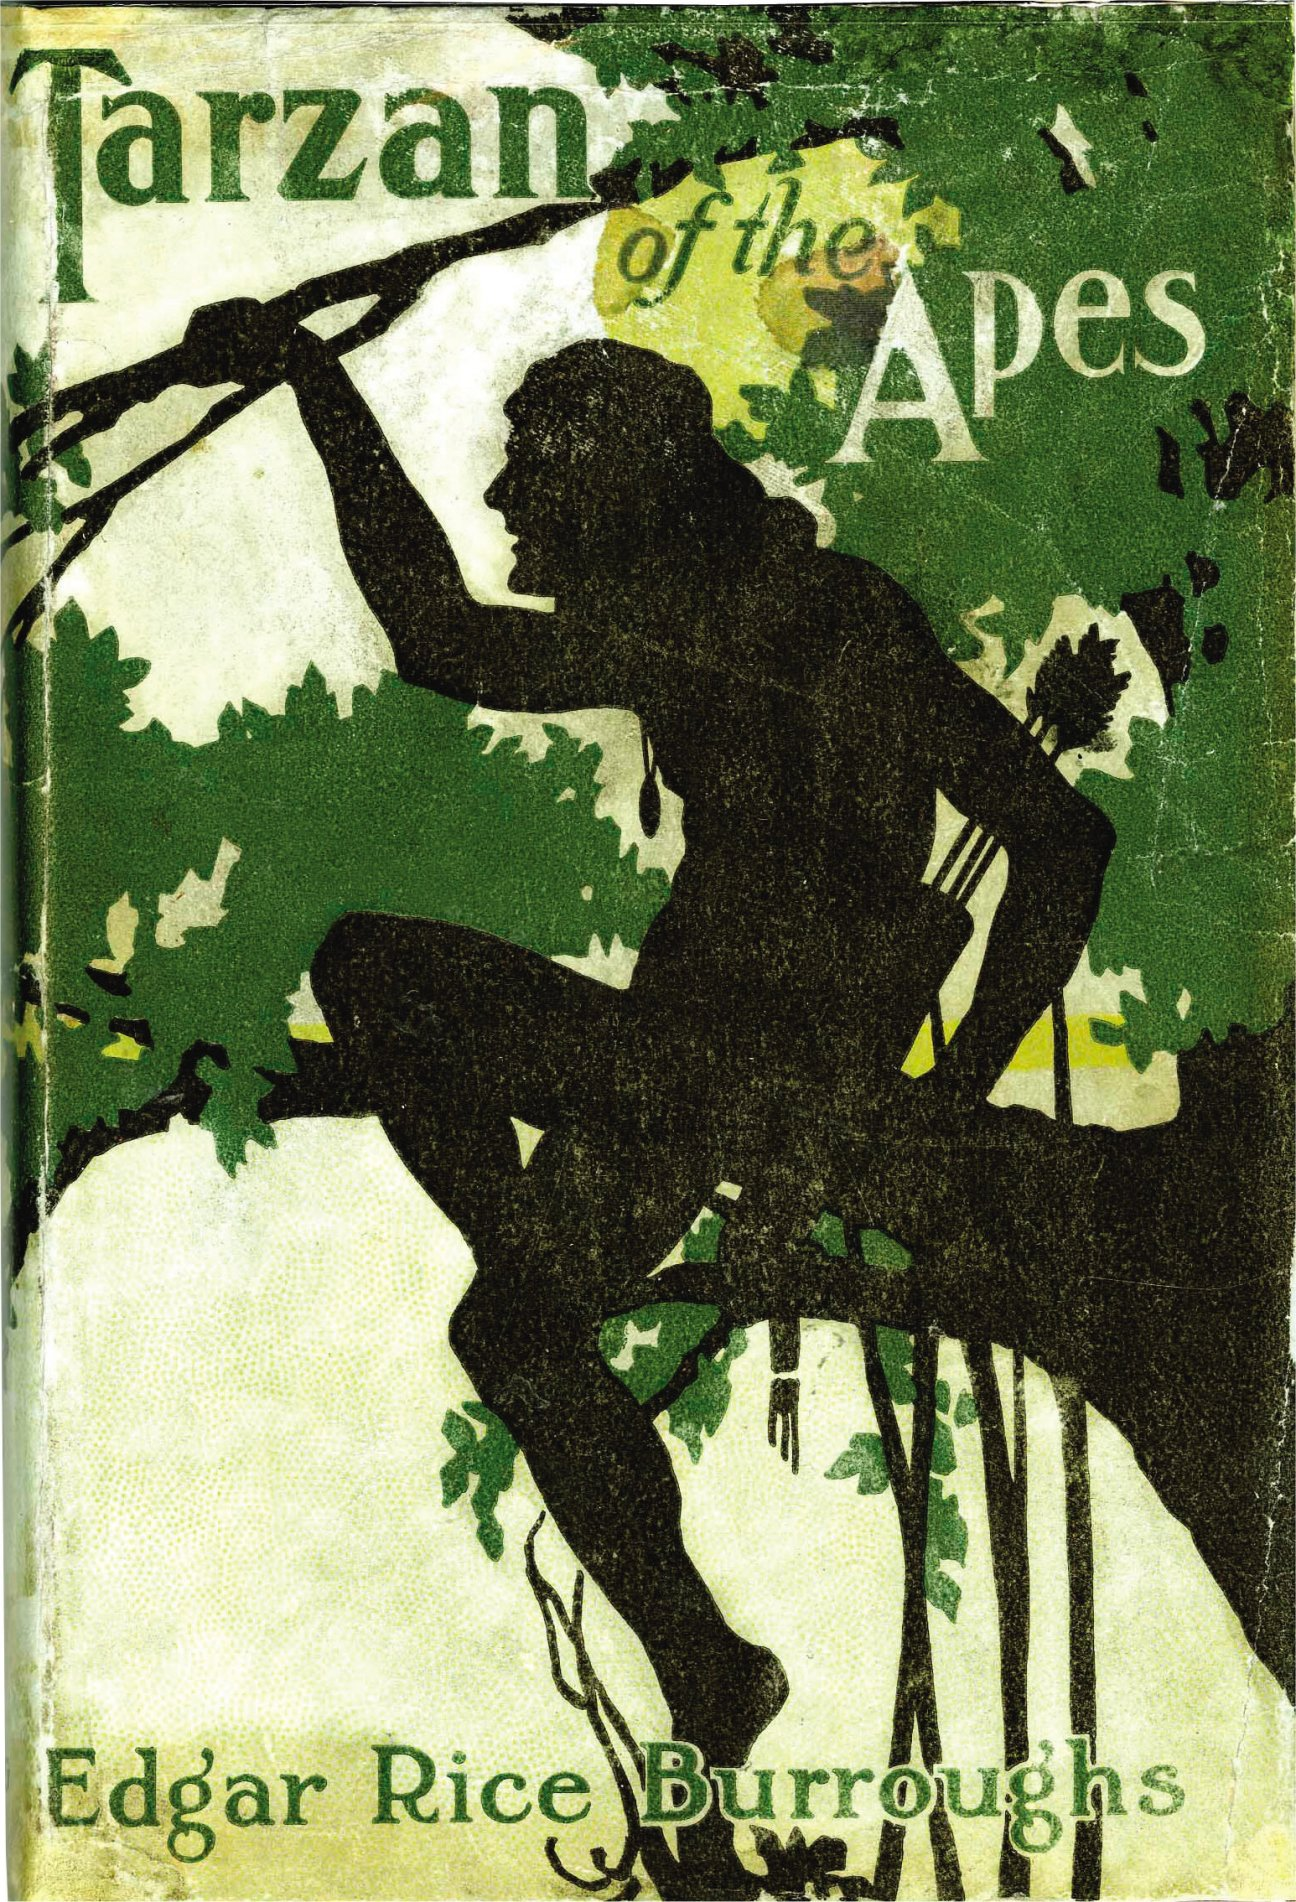 First Illustrated Book Cover : What s new archives edgar rice burroughs